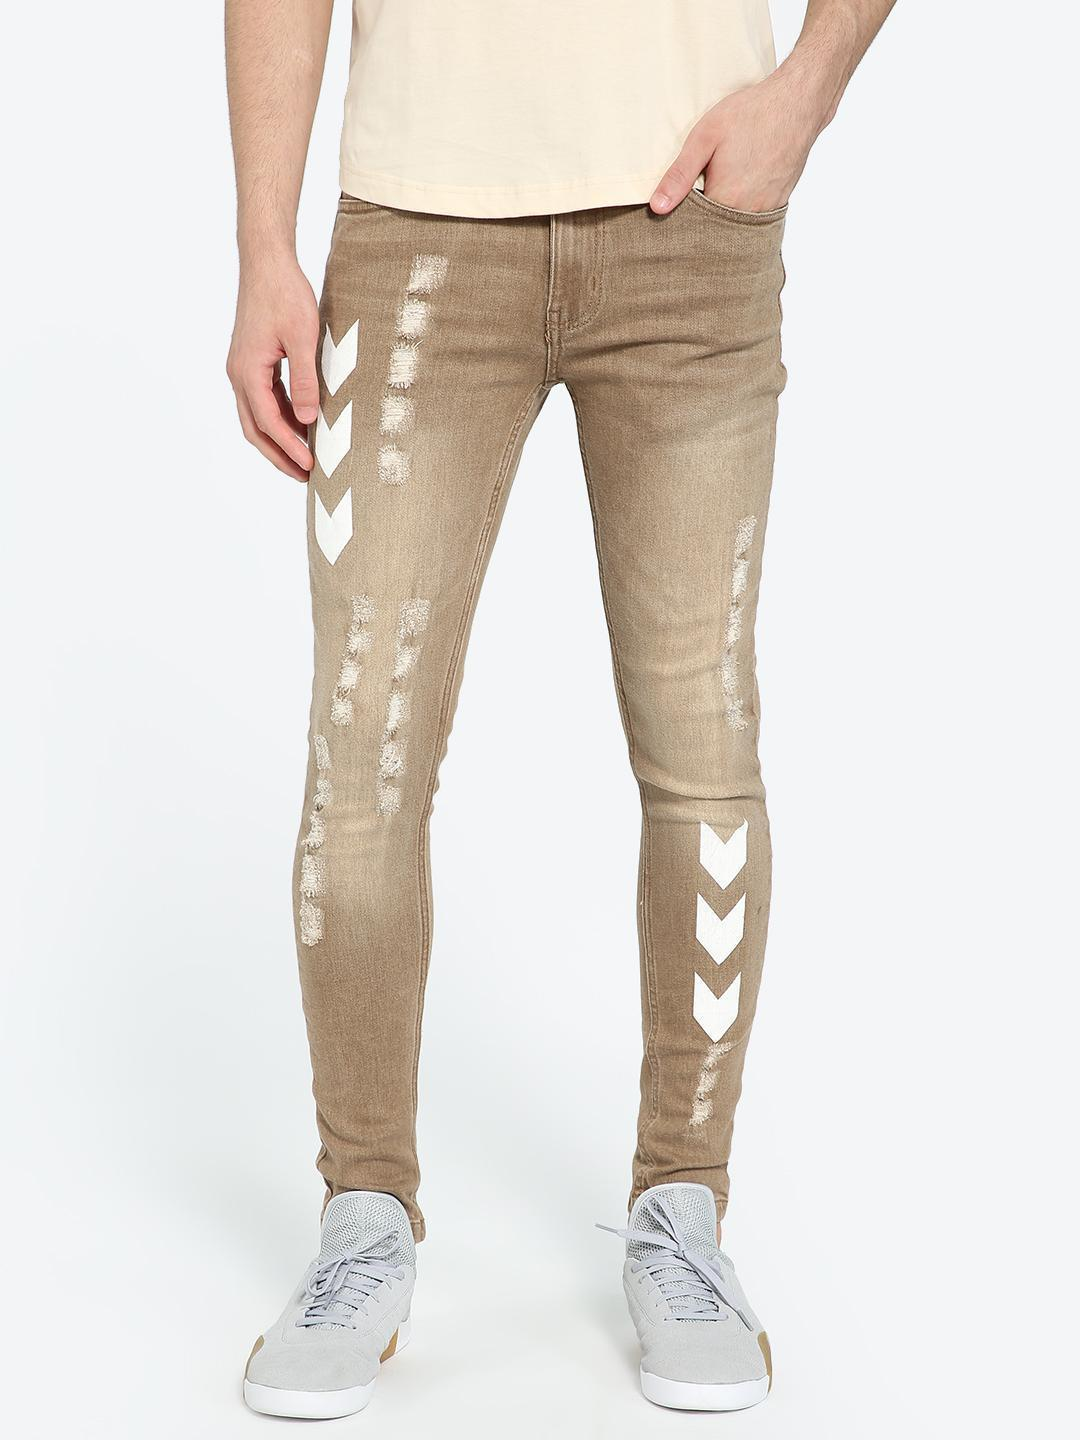 IMPACKT Brown Track Print Washed & Distressed Skinny Jeans 1